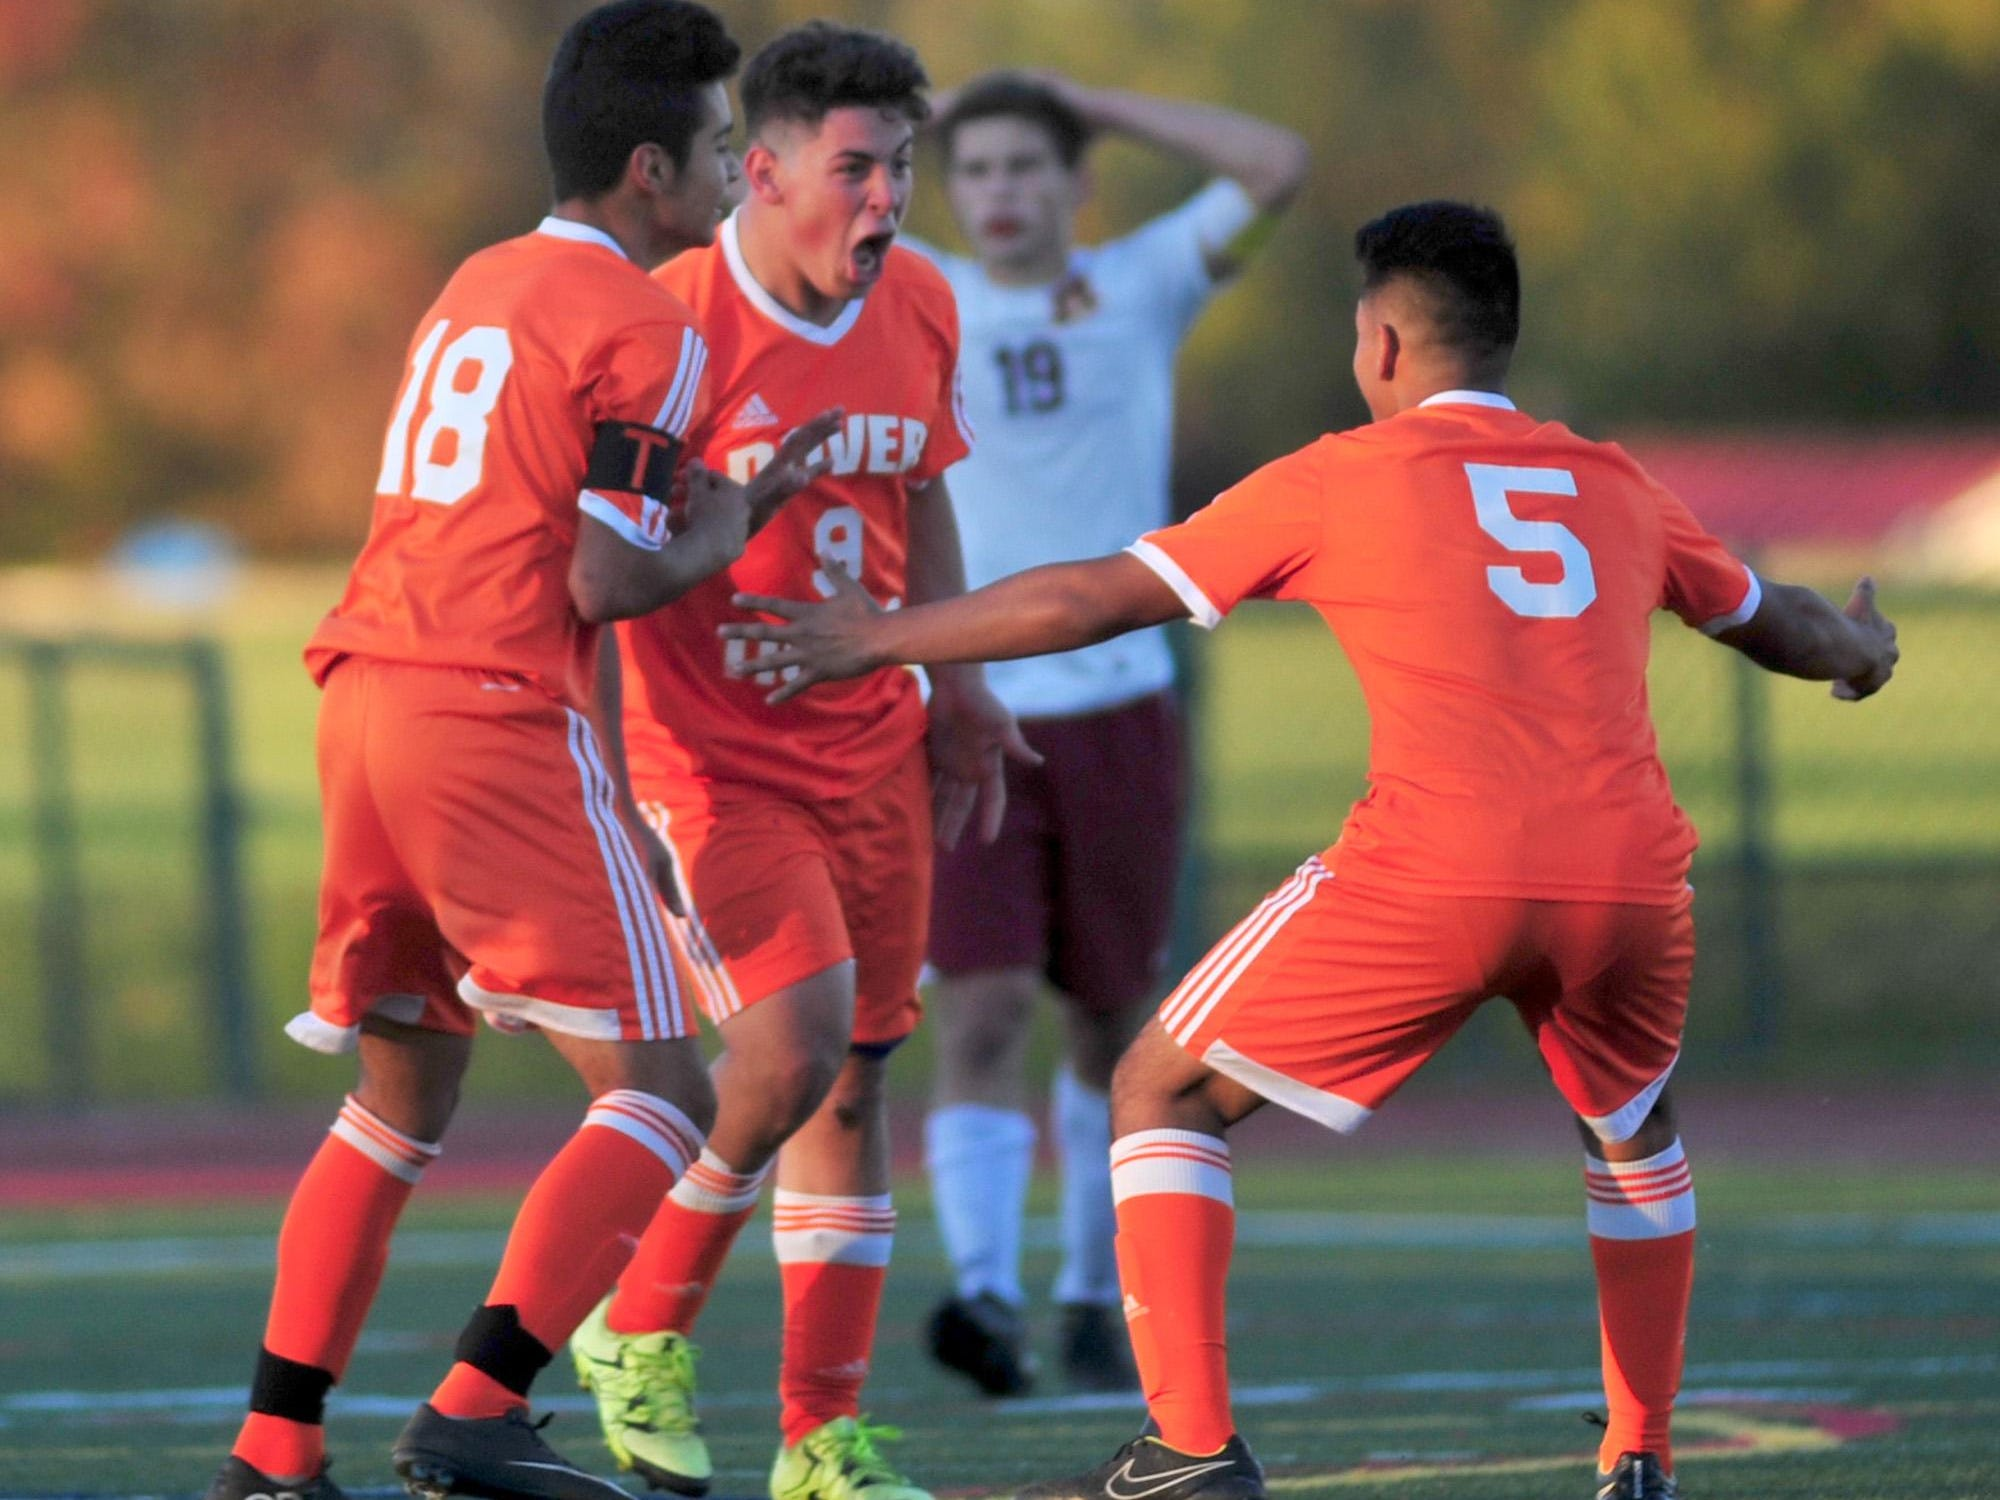 Seniors Leandro Suarez and Armando Caamano celebrate Dover's tying goal with sophomore Isaiah Flores, who scored.